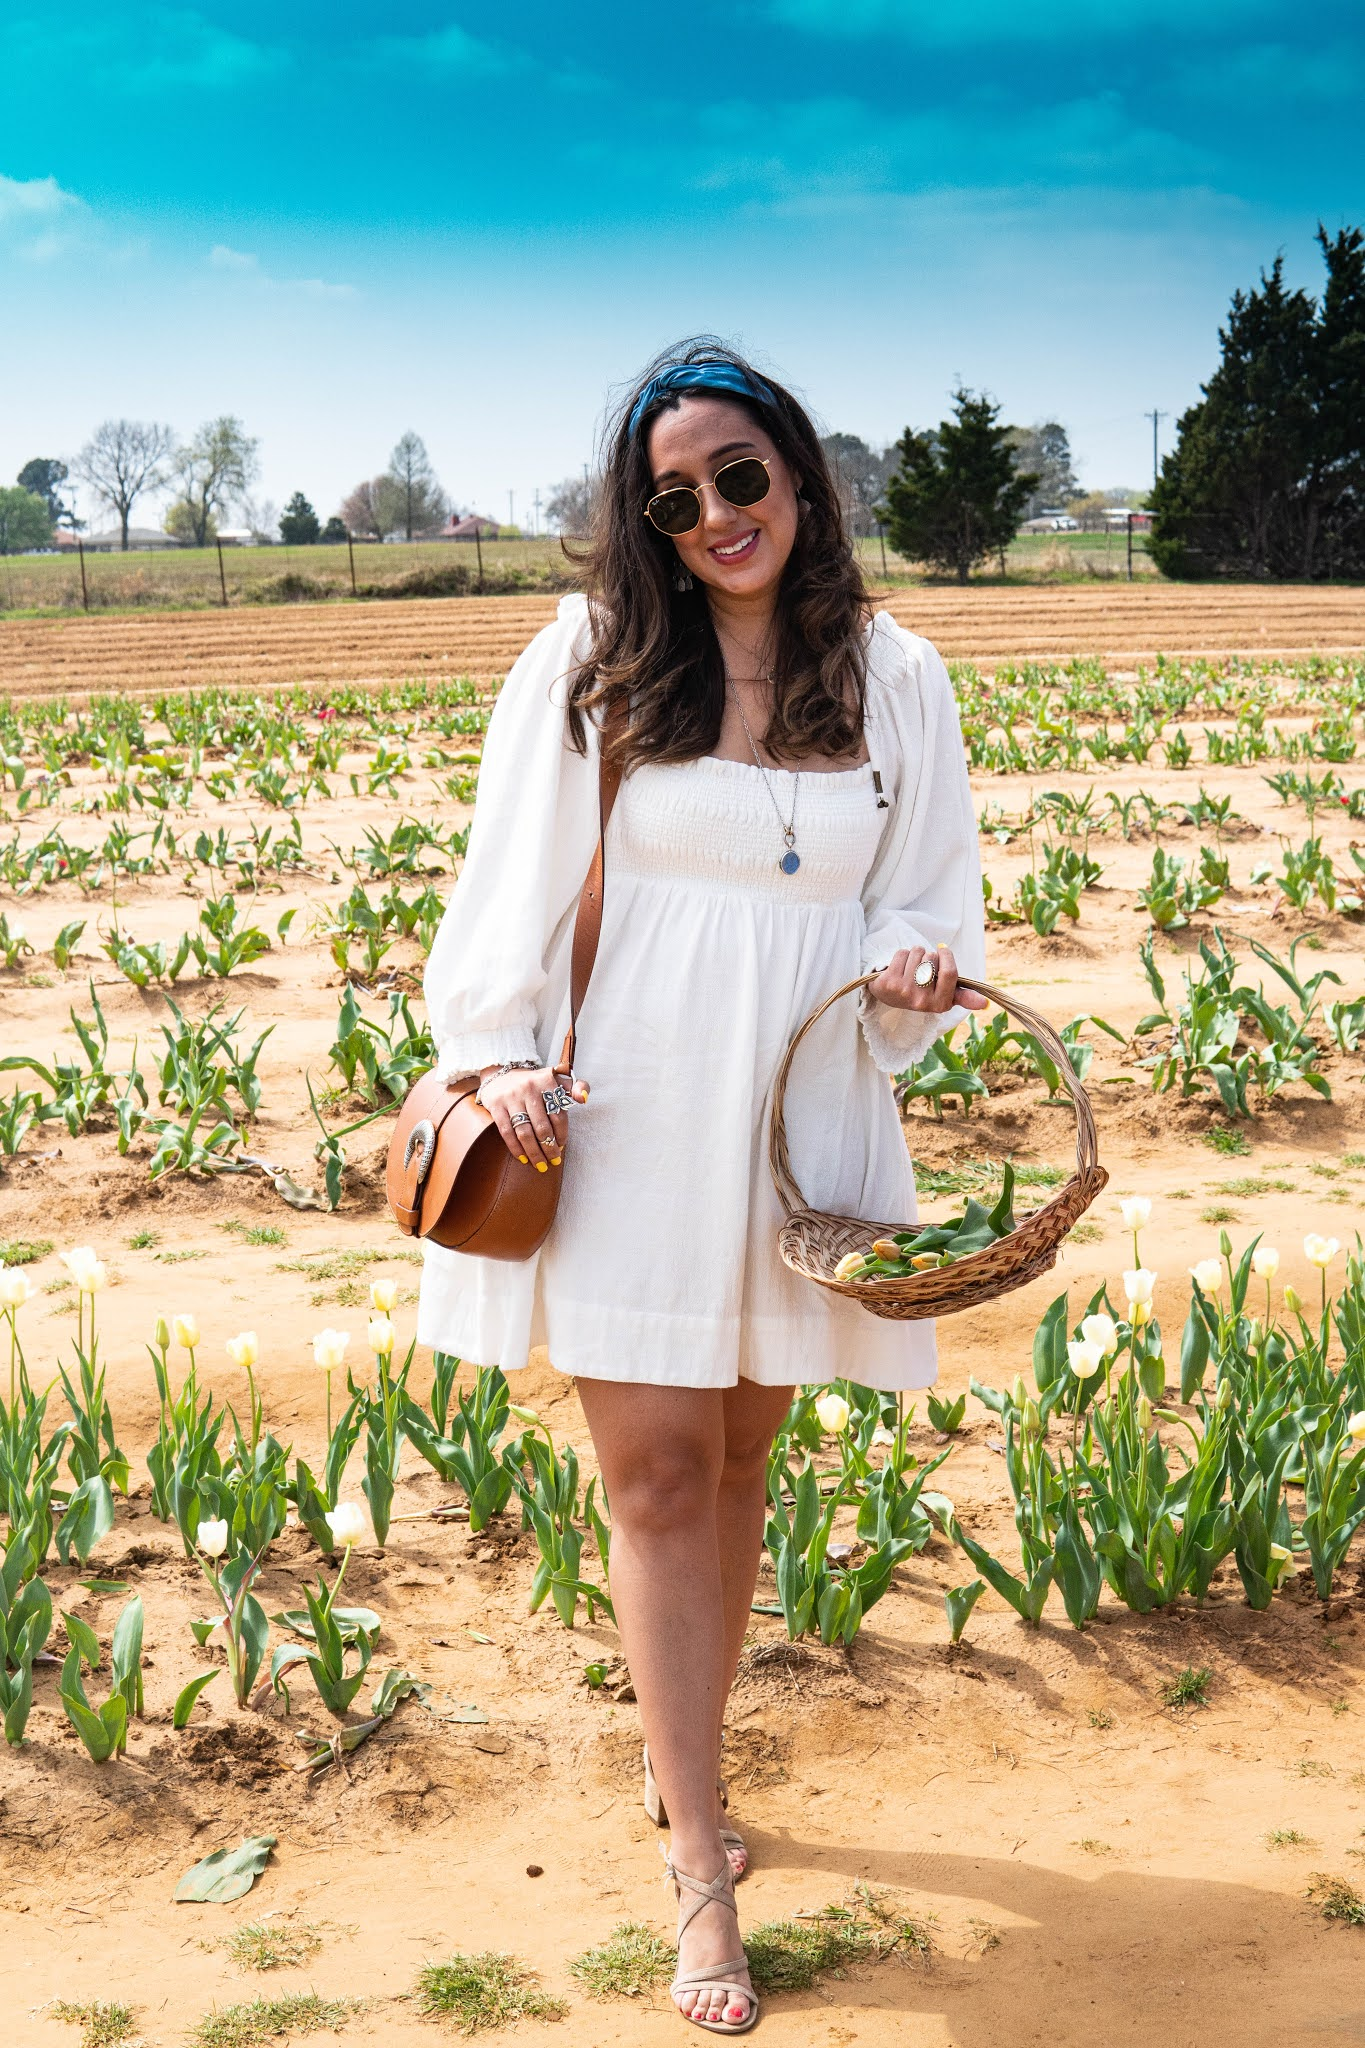 Amelia standing in a tulip field with a basket of freshly picked tulips